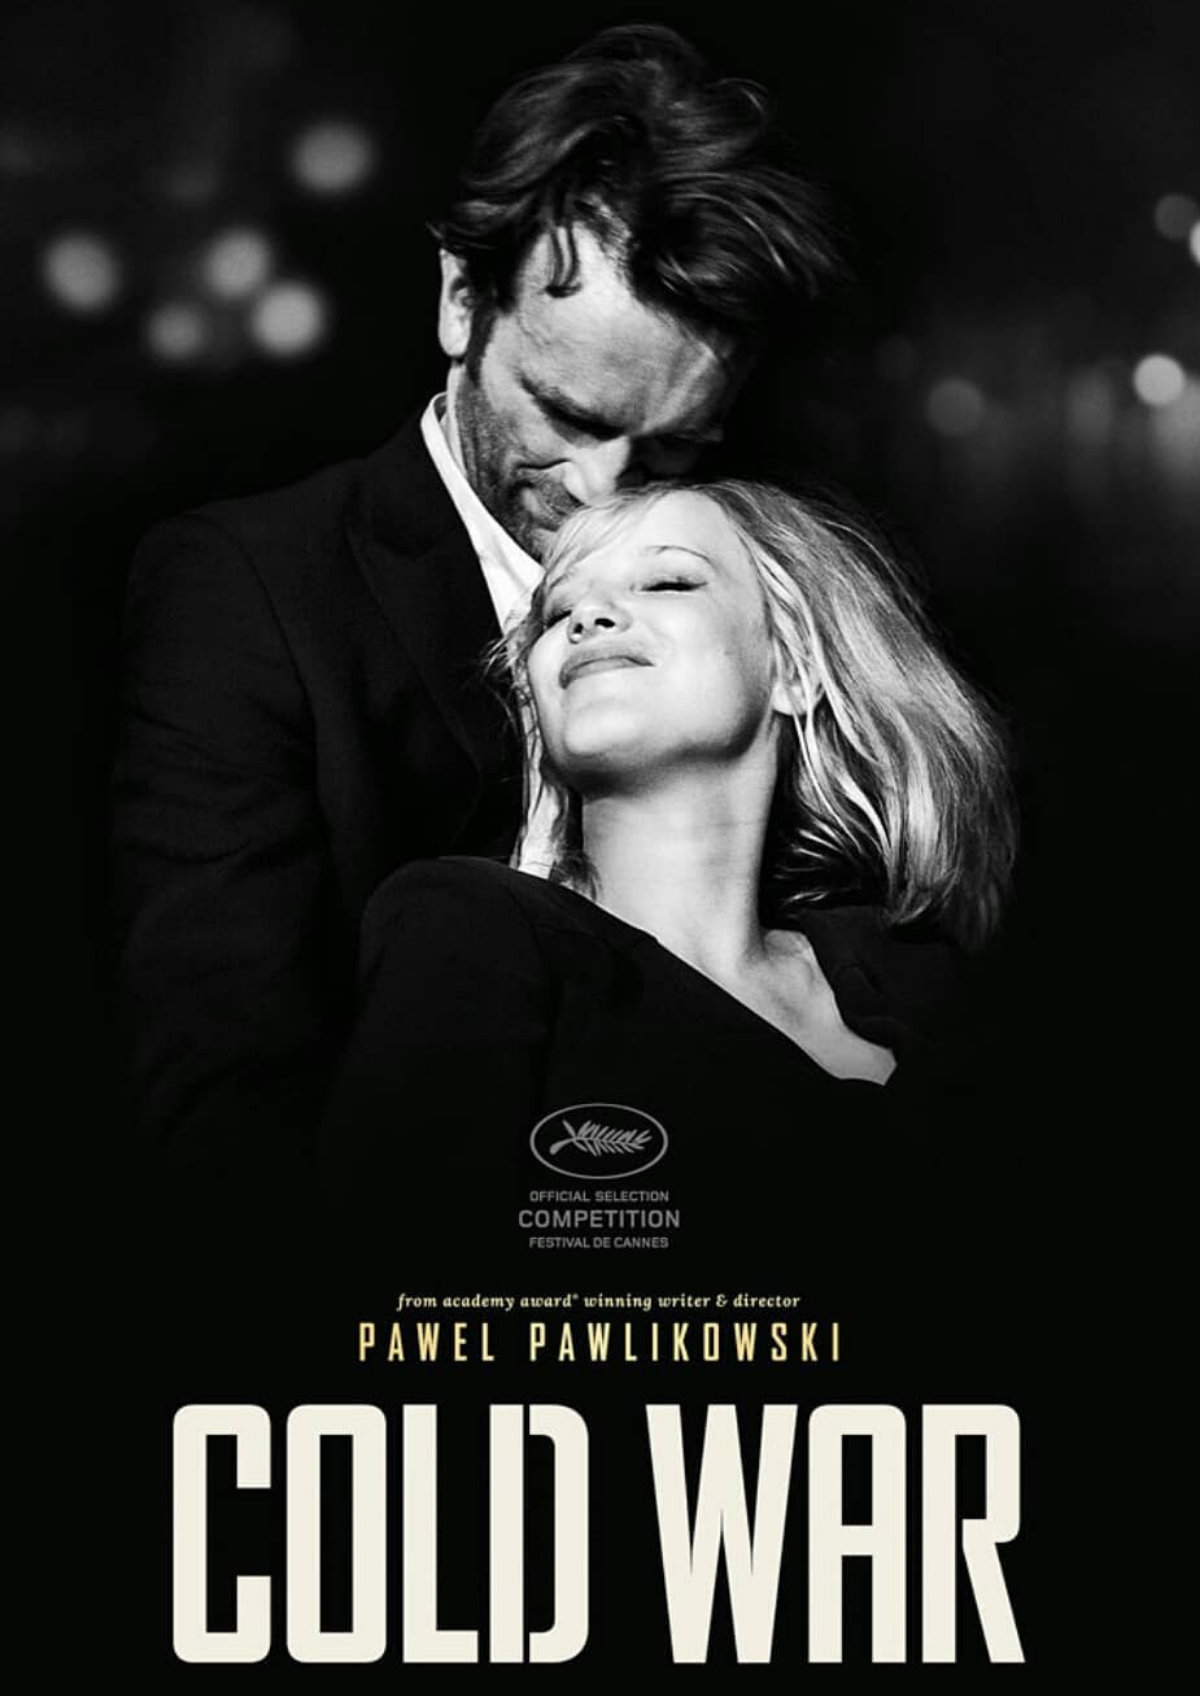 'Cold War' movie poster